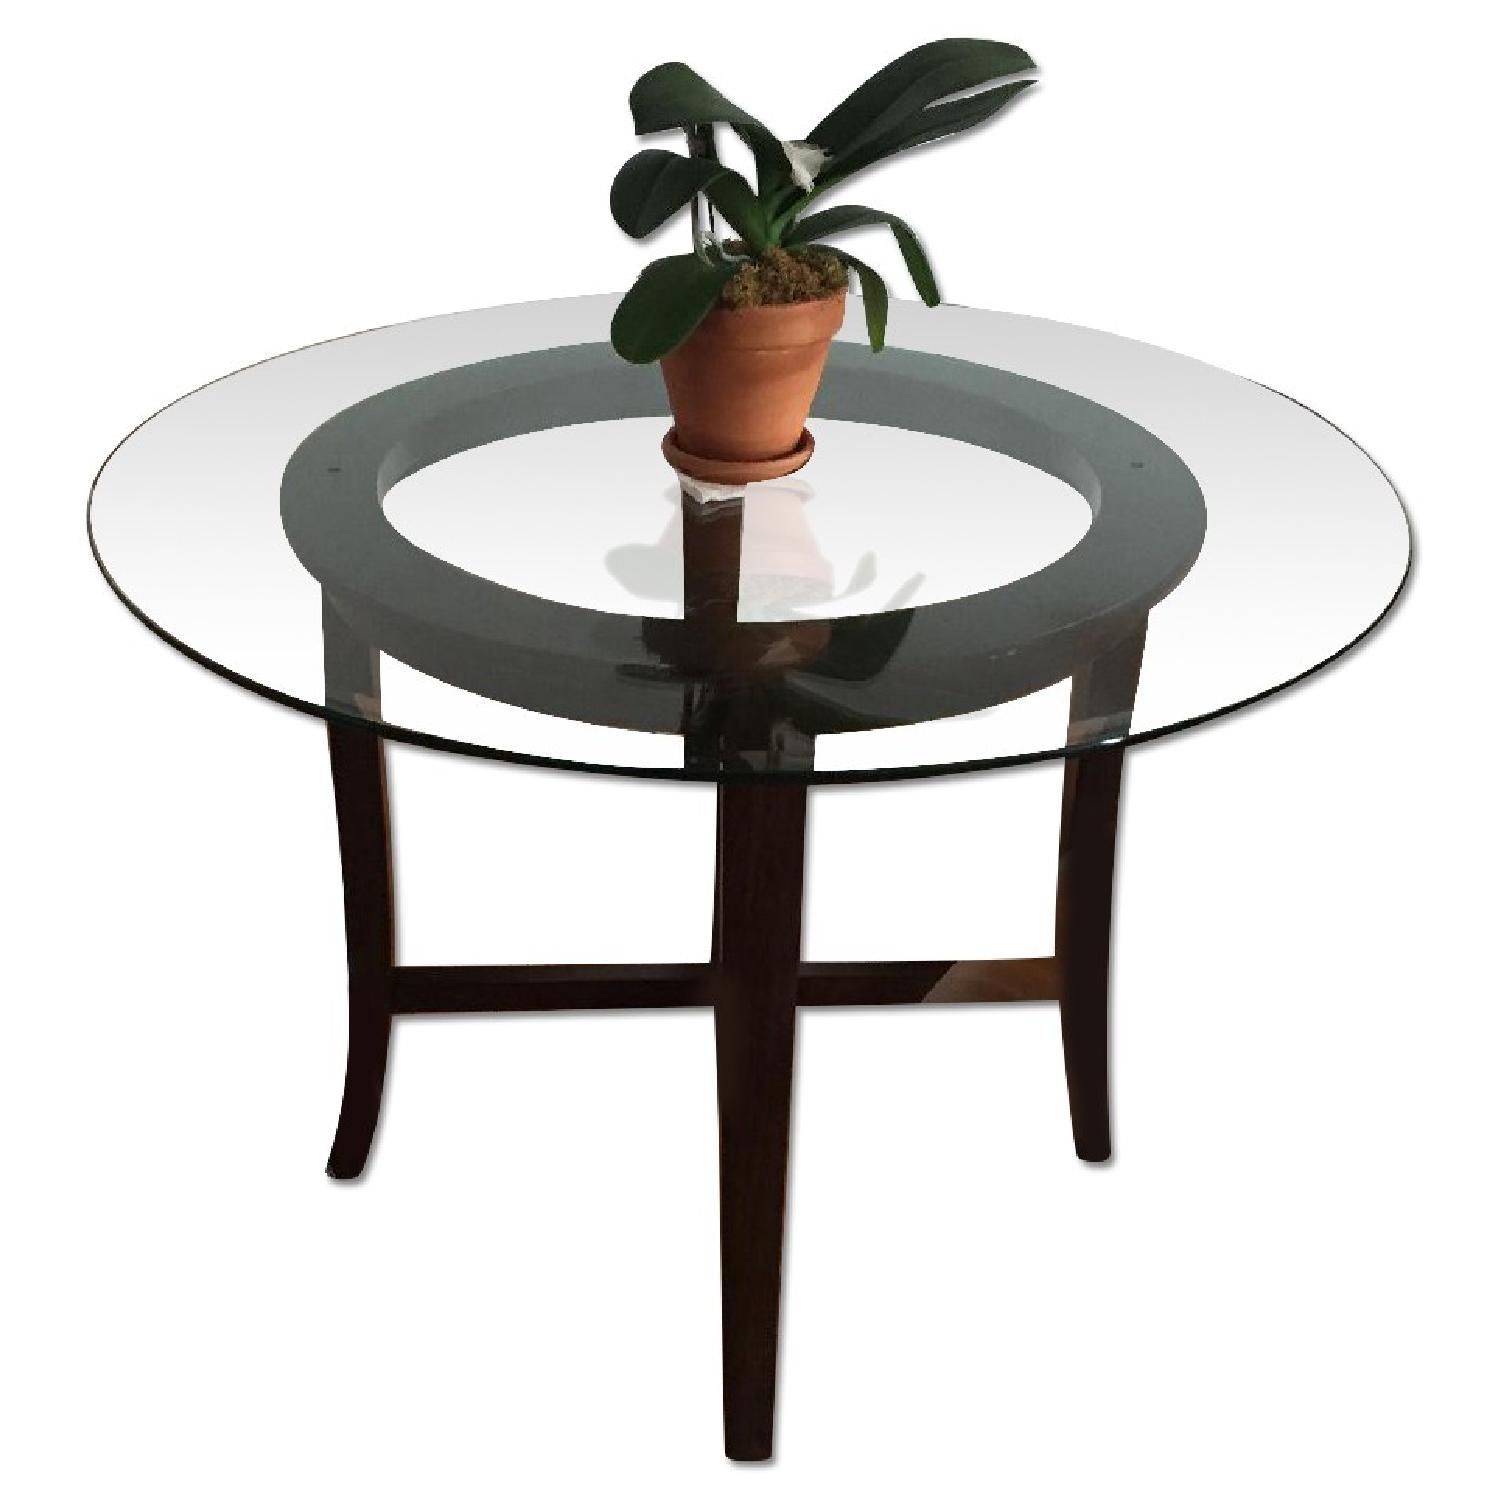 Crate & Barrel Halo Ebony Round Dining Table w/ Glass Top - image-0